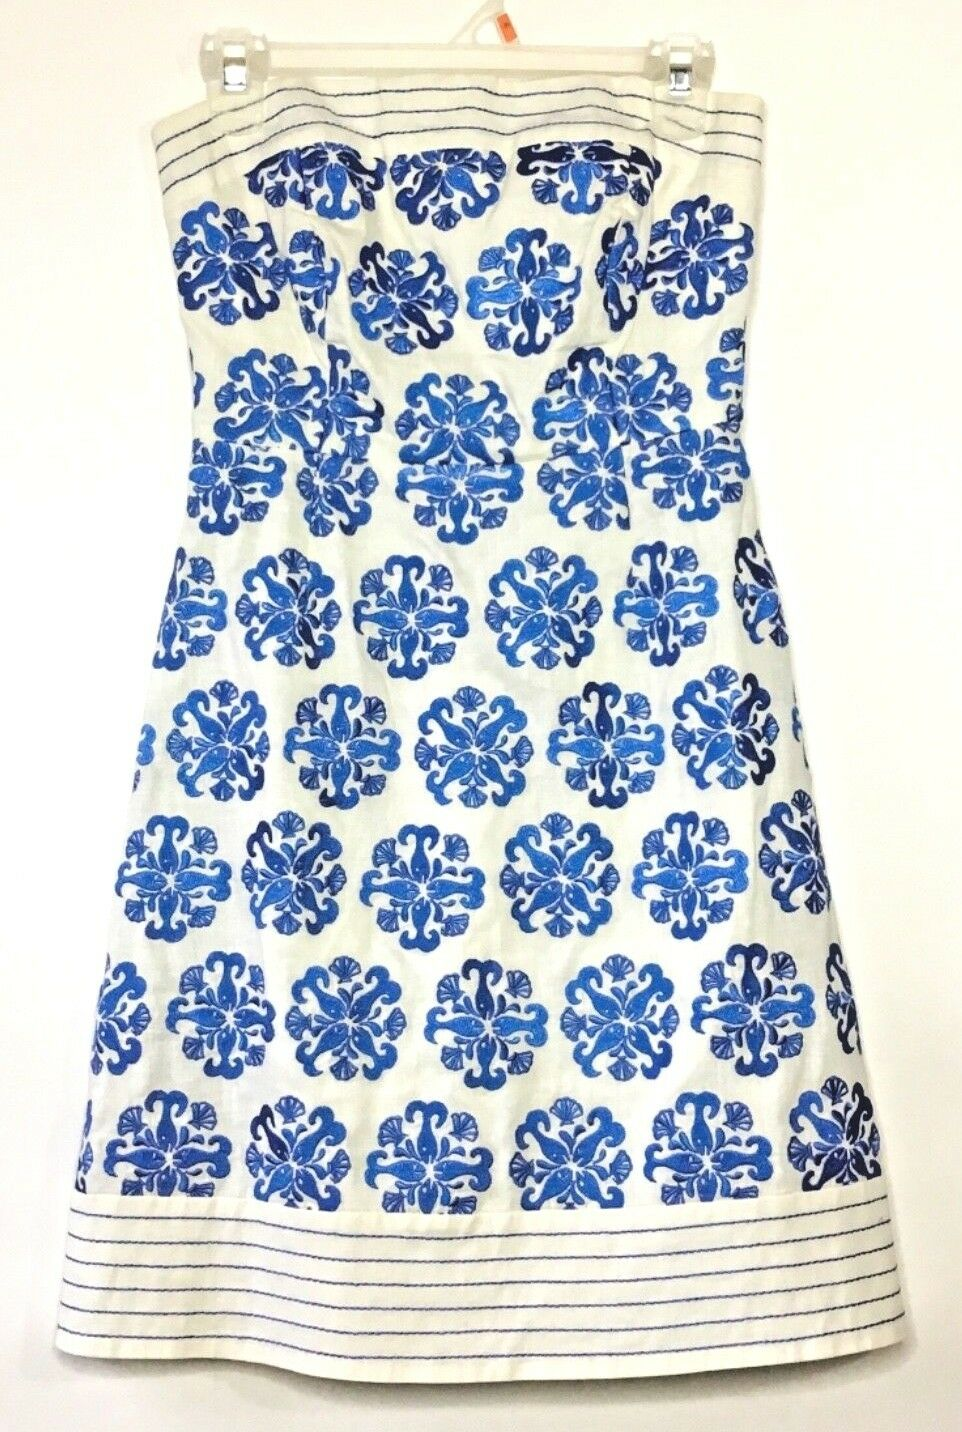 Lilly Pulitzer Womens Strapless Embroidered A Line Dress 0 Off White bluee EUC K8